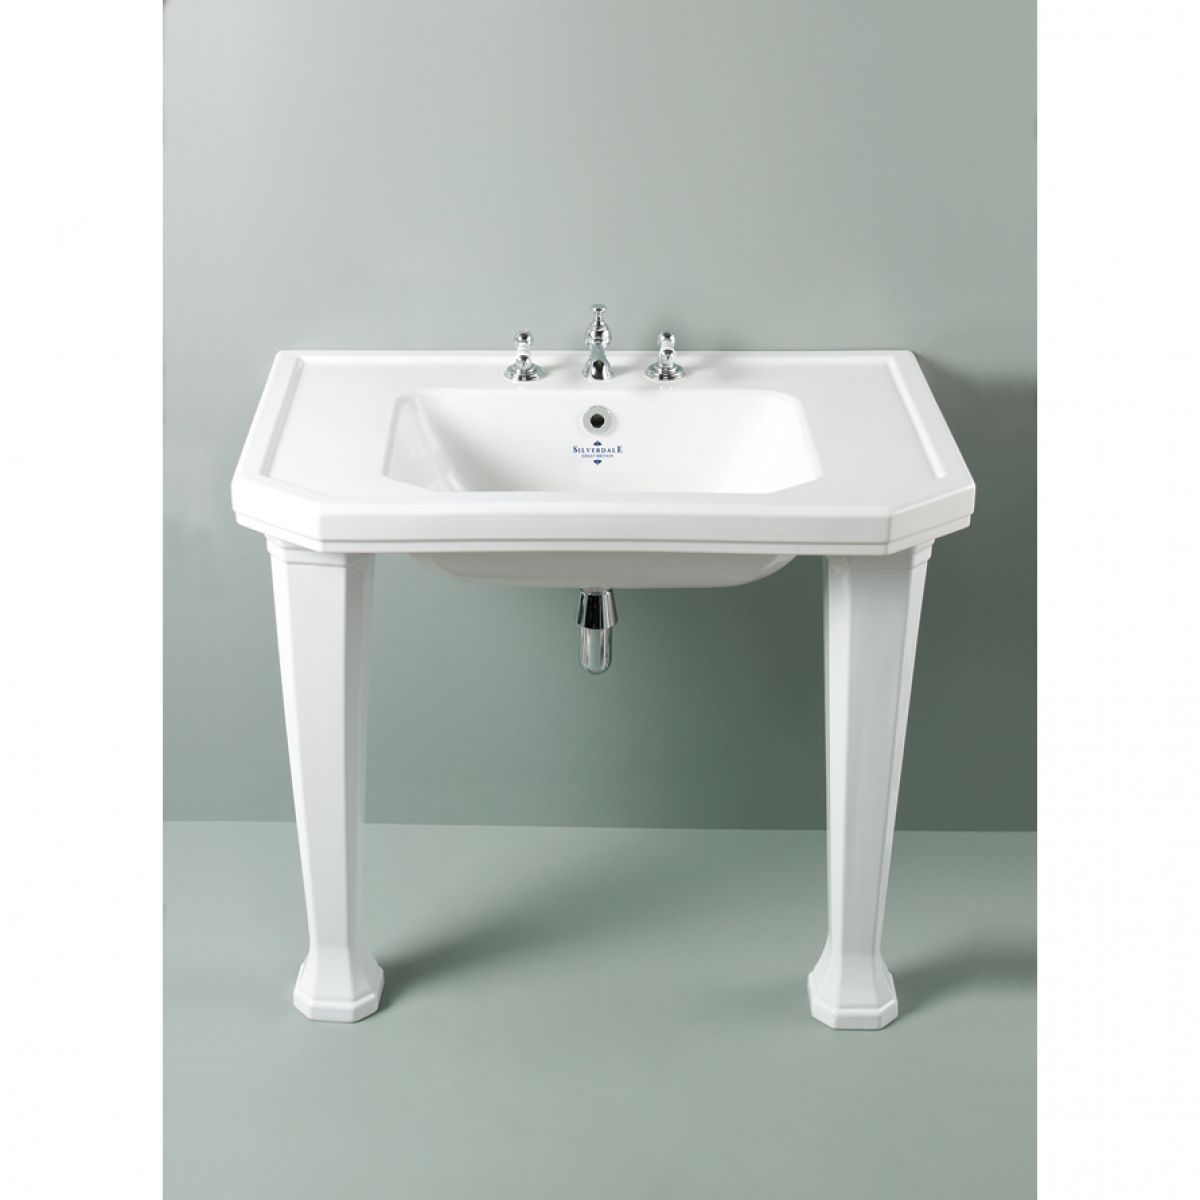 traditional bathroom mirror basin - photo #43